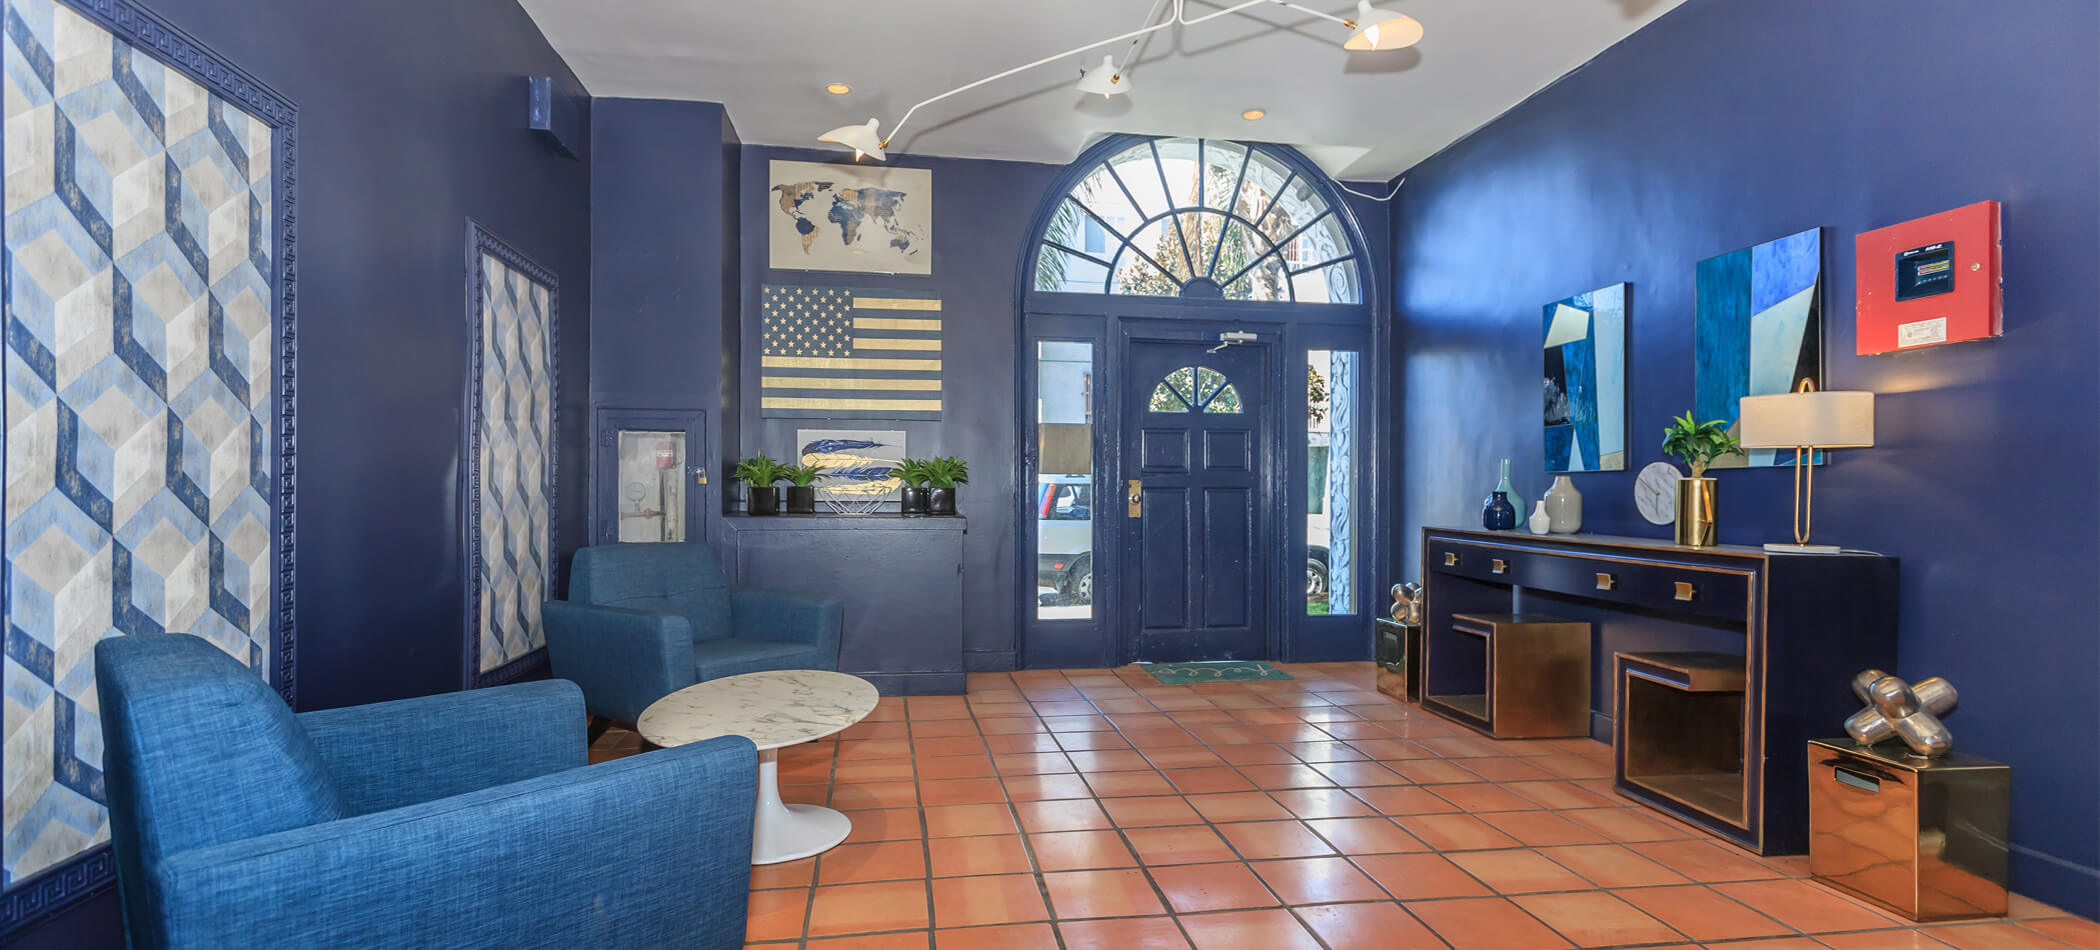 KTown Apartments on Catalina slideshow image